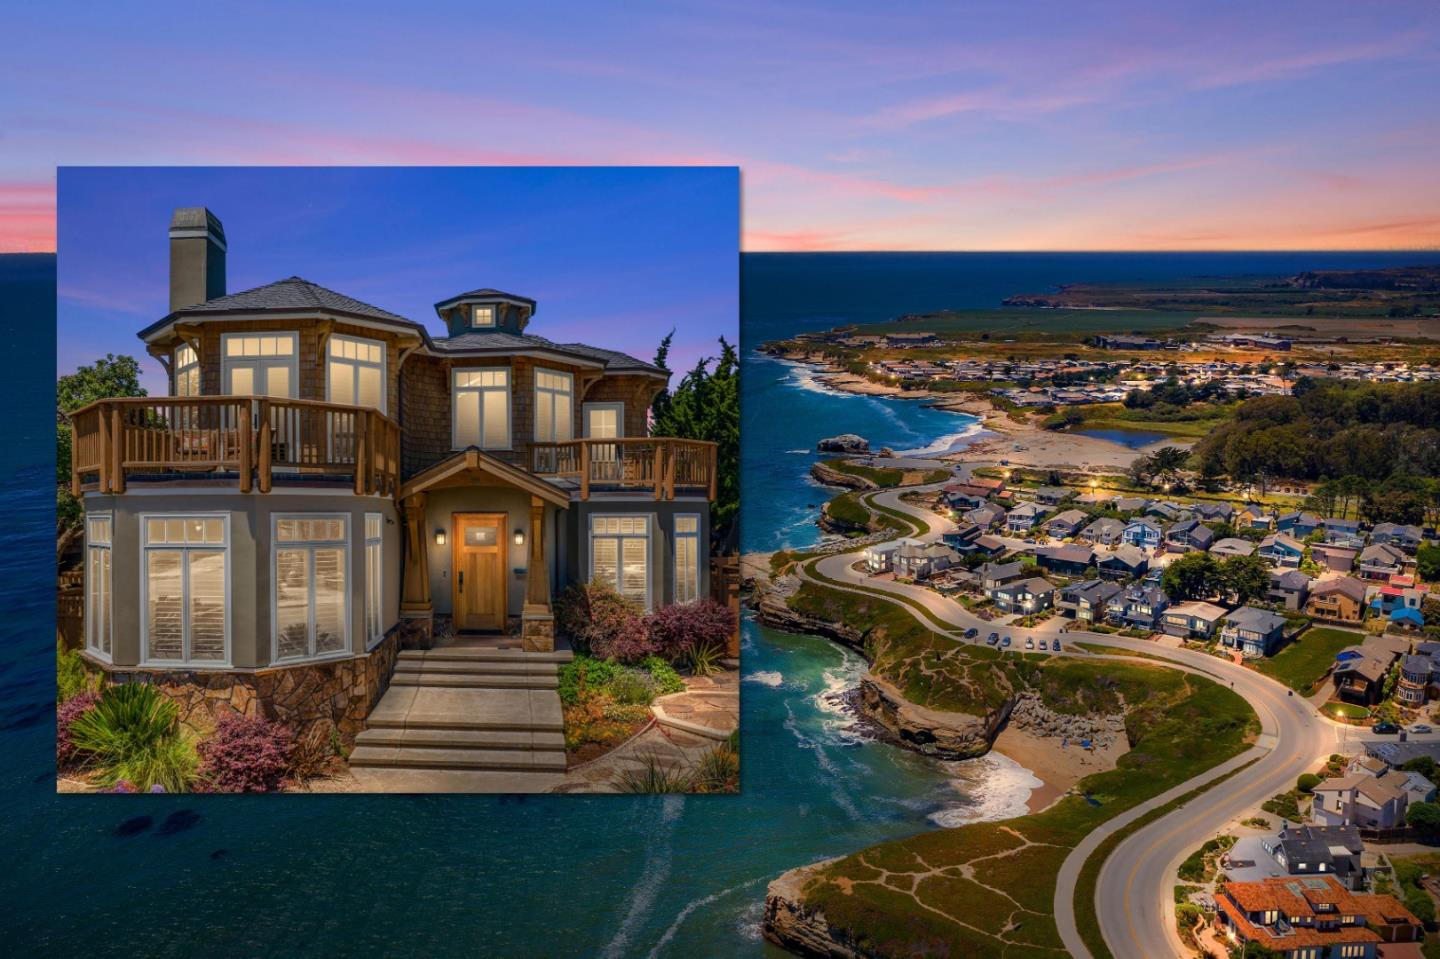 This stunning oceanfront home built by Meschi Construction in 2008 is truly one of a kind. 103 Auburn Avenue is an architectural masterpiece, an ode to classic elegance and a nautical craftsman aesthetic. Expansive windows offer sweeping ocean views and sparkling lights of the expansive Monterey Bay. Experience a daily display of sea life, from otters, seals, dolphins and humpback whales, from the luxury of this unique home. Bordered by the Santa Cruz Municipal Wharf and Natural Bridges State Beach, and fronted by the Monterey Bay, West Cliff is an oasis within the city. Major $500K+ Price Reduction!